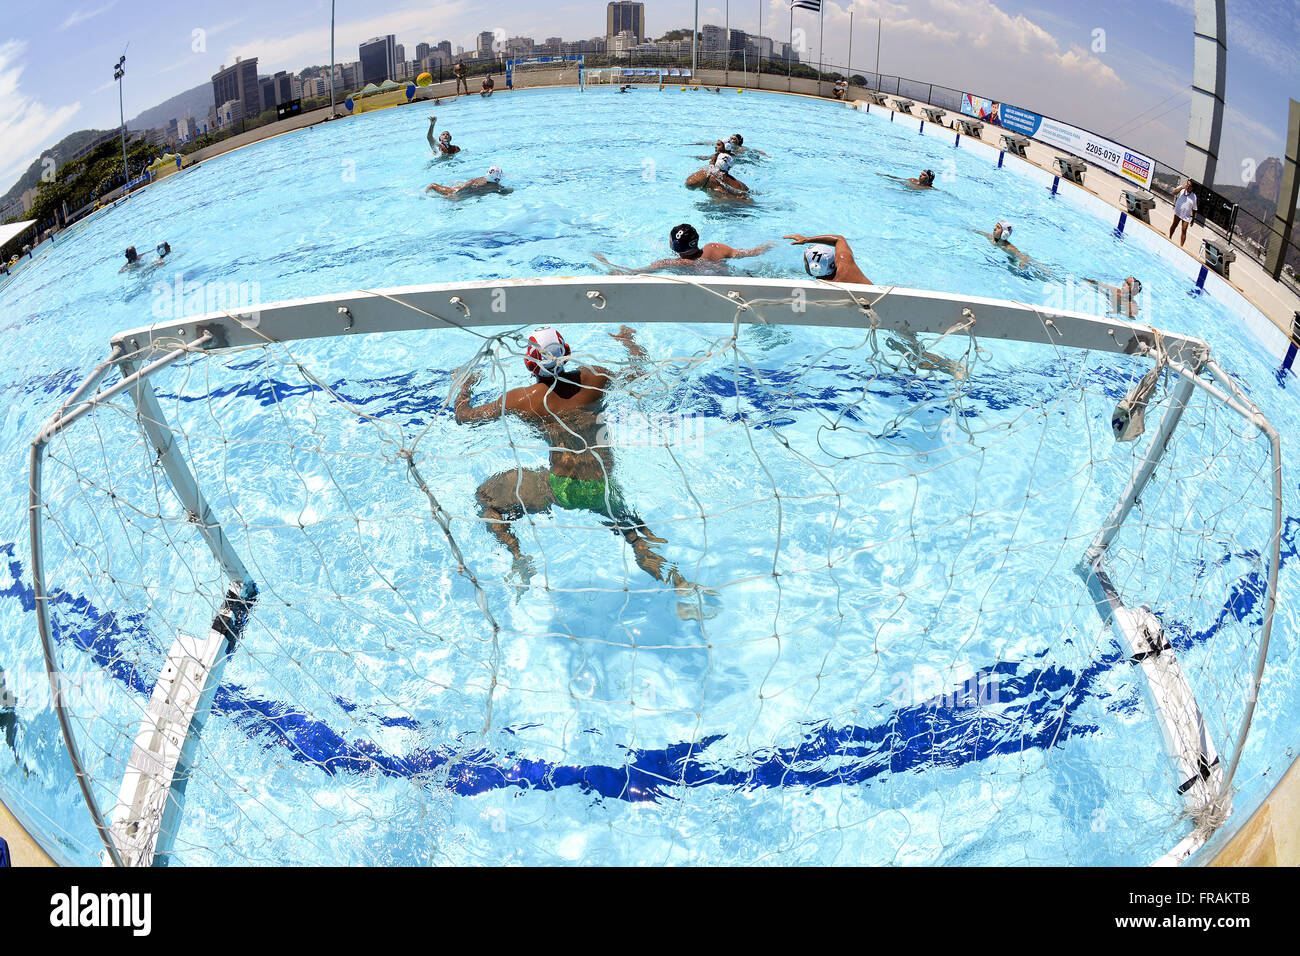 Water polo competition - Stock Image